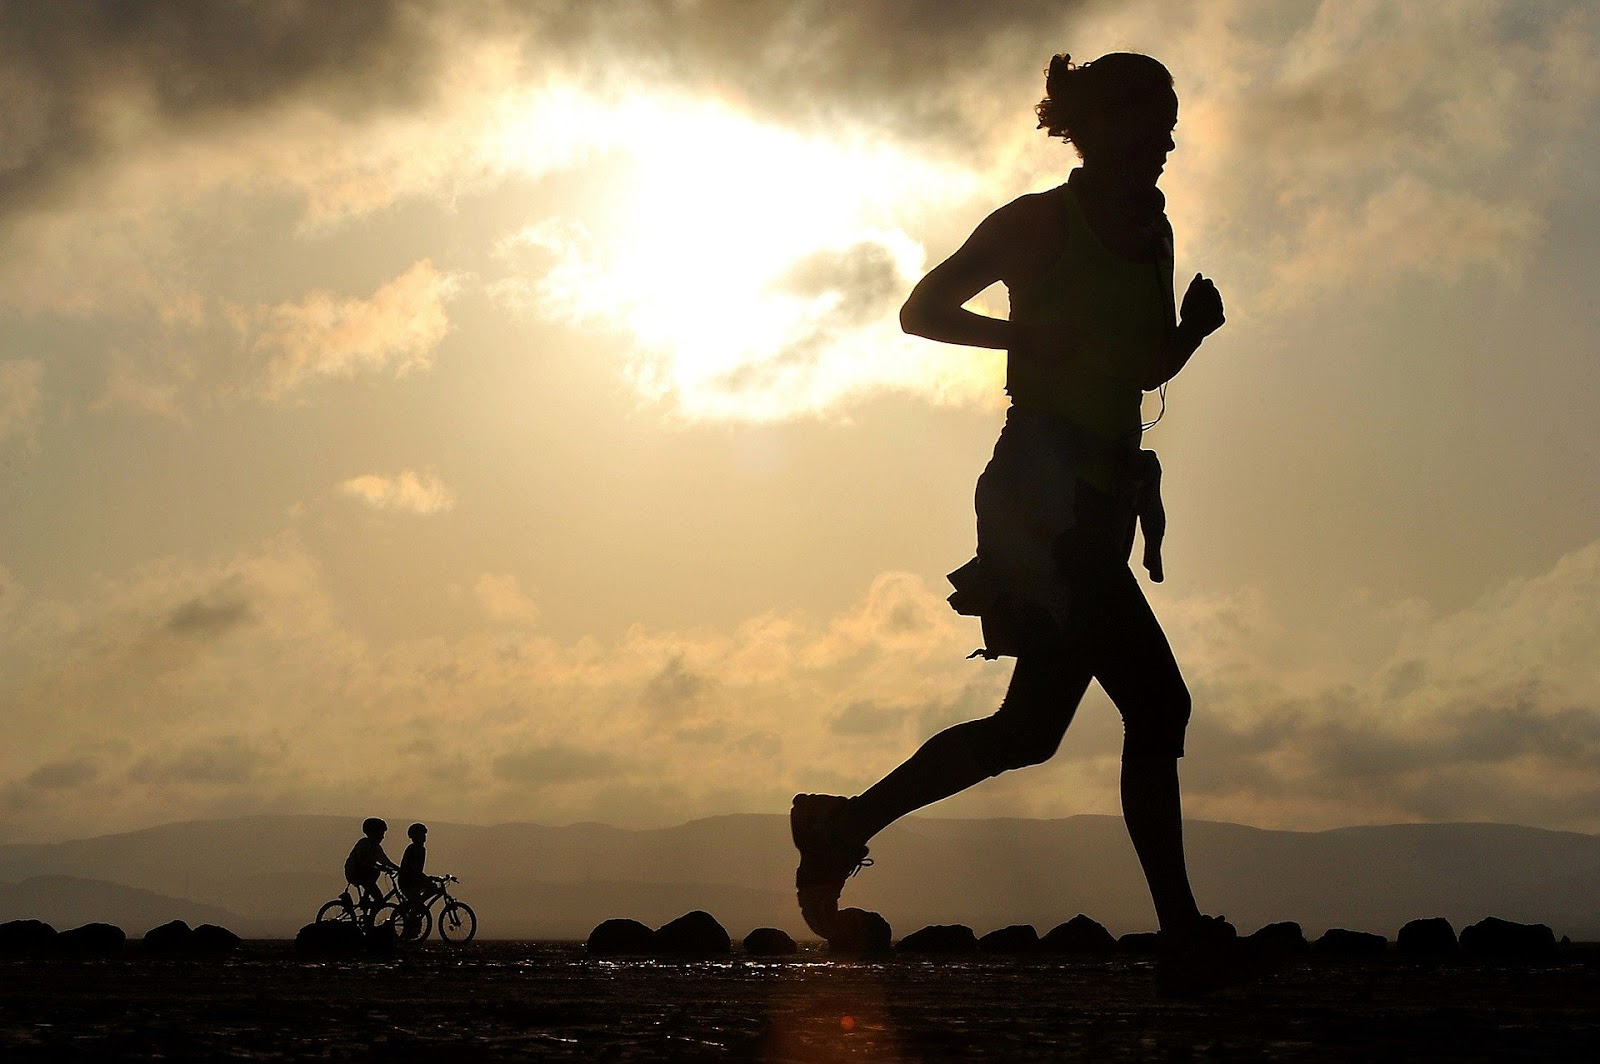 Running is a good way to get outside safely, exercise and clear one's mind.